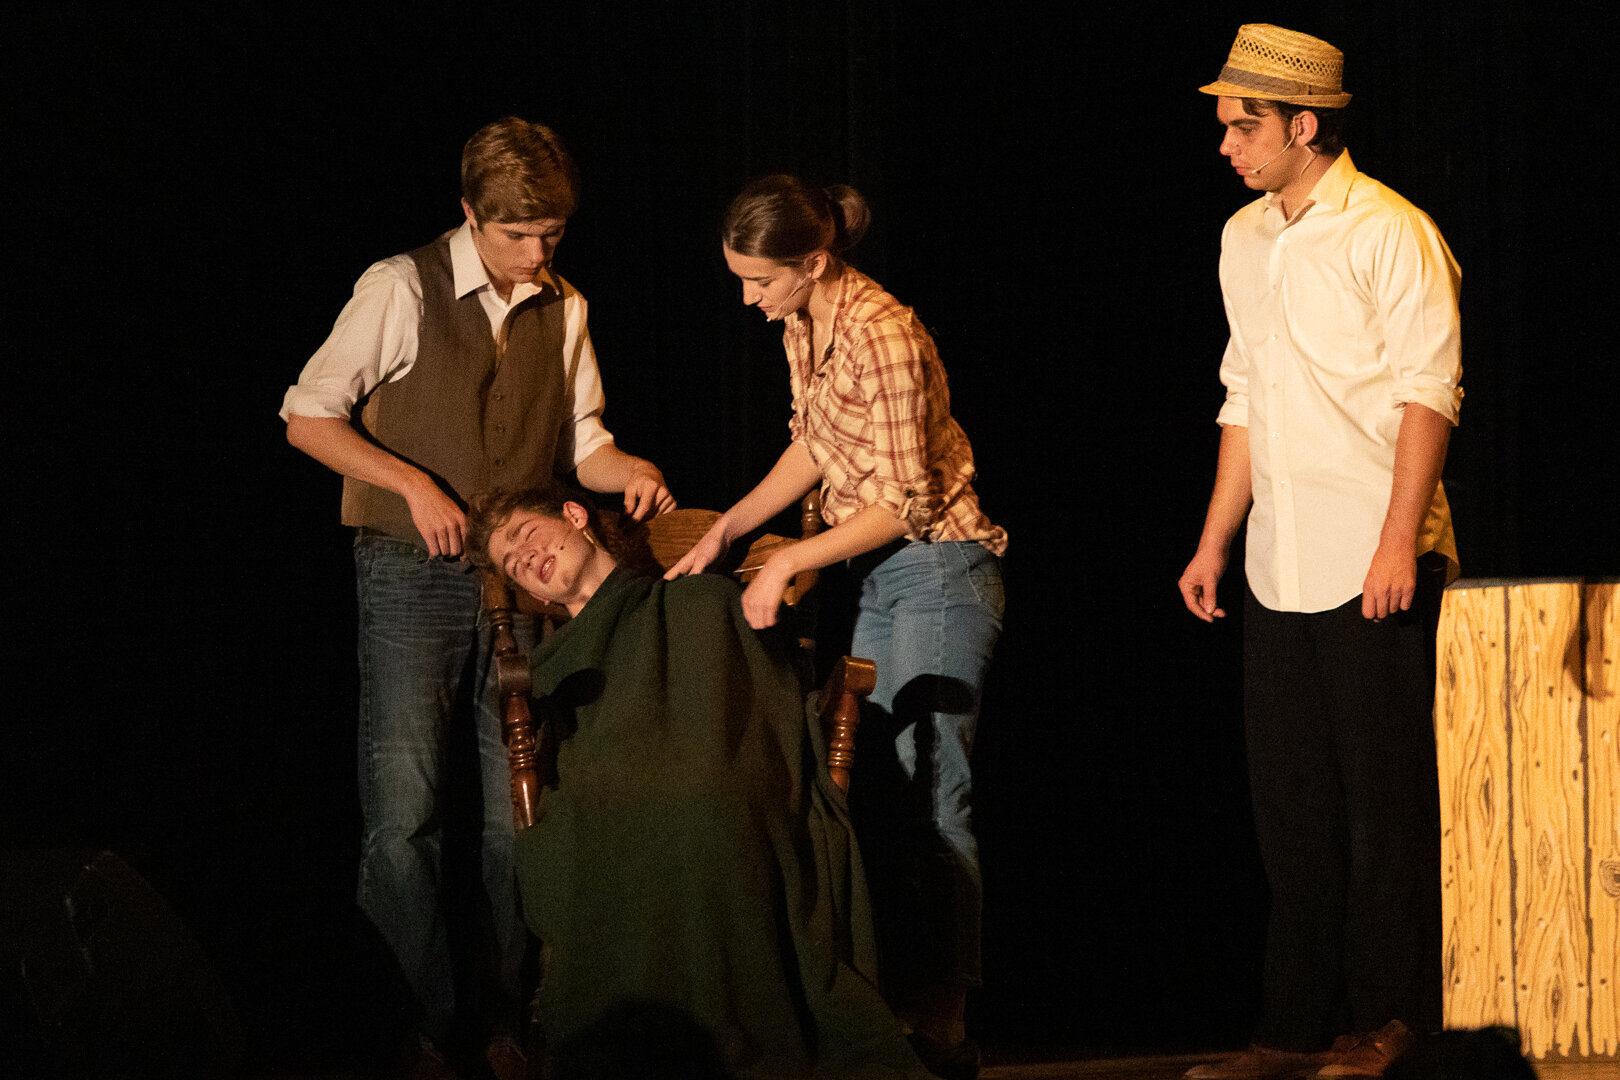 Marian-The-Diviners-Play-6895.jpg